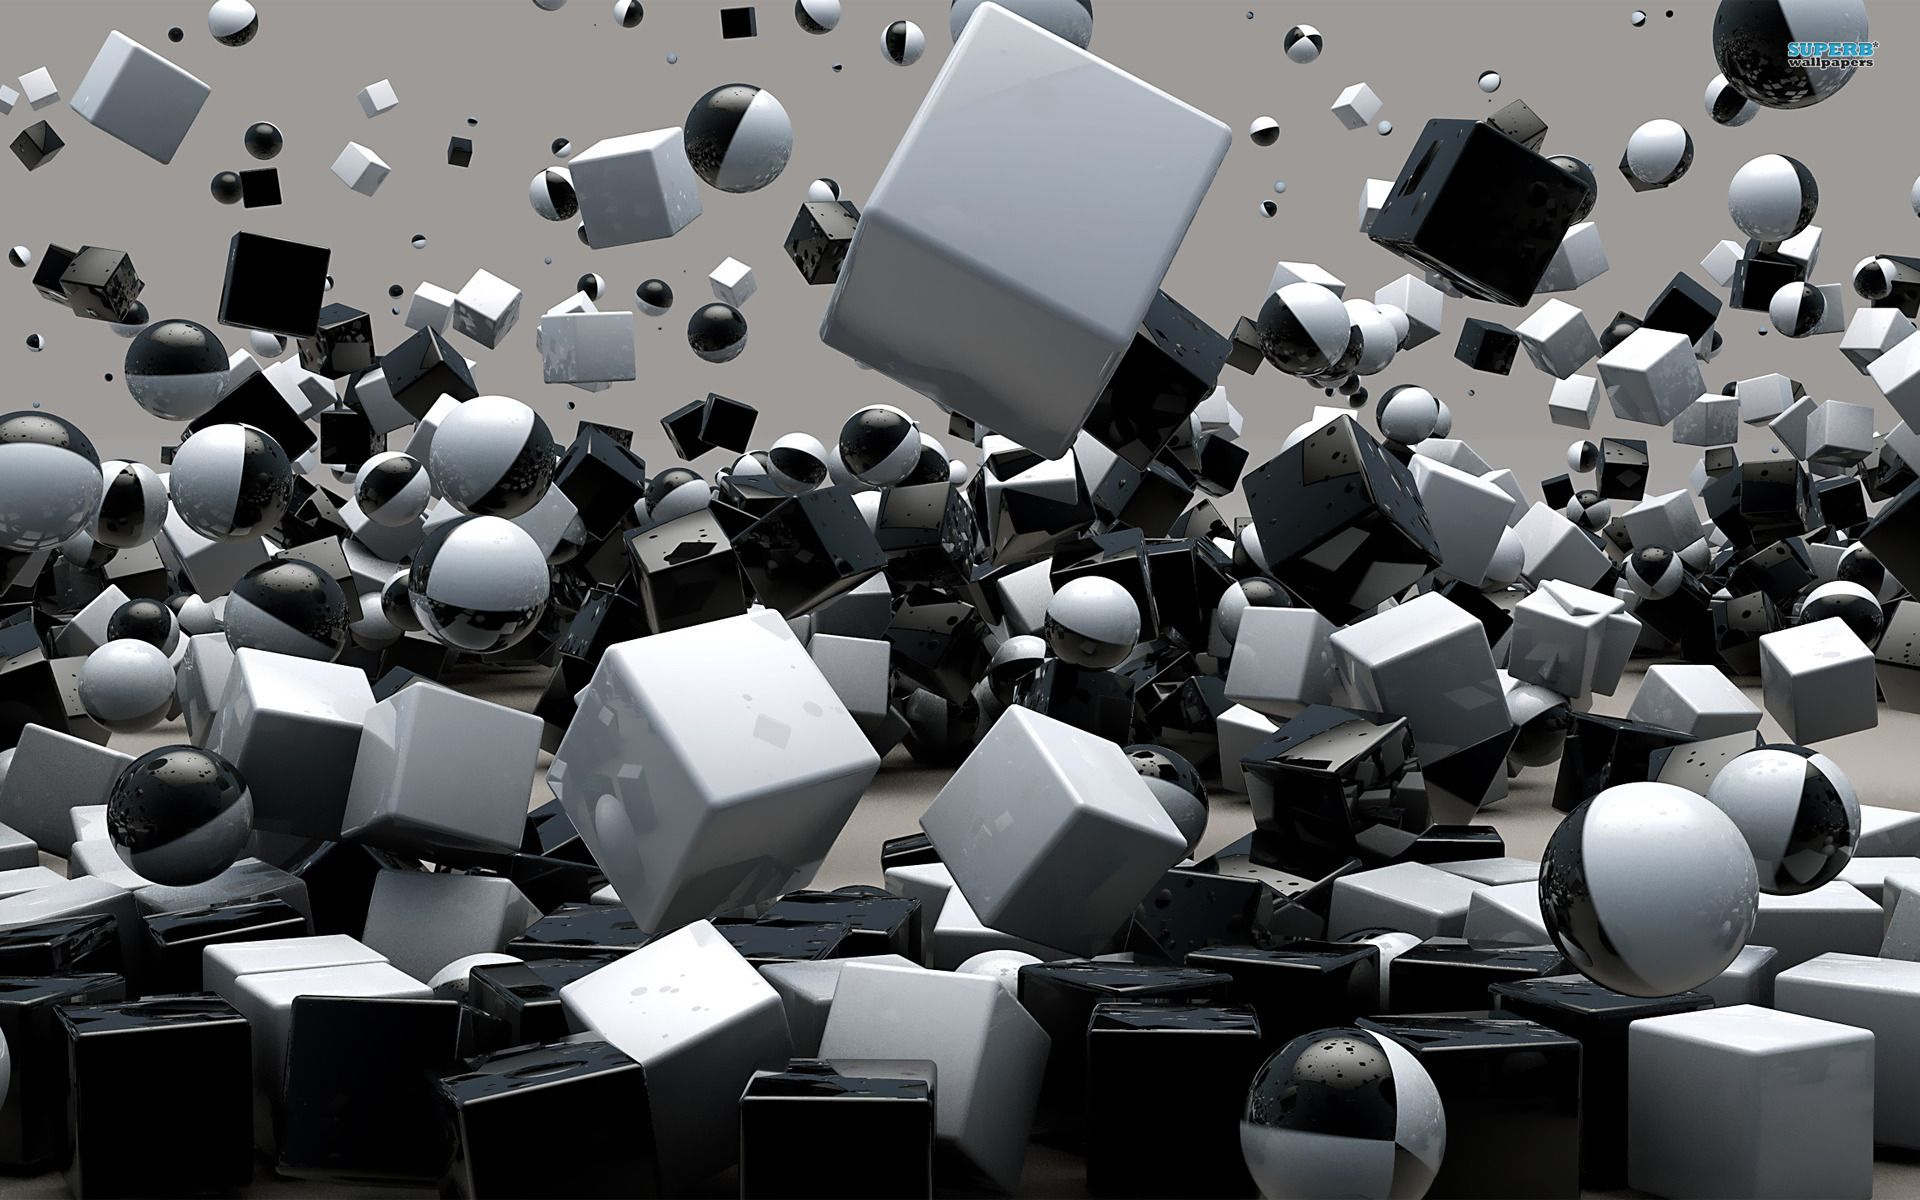 3d Shapes Wallpaper Hd Wallpapers Backgrounds Of Your Choice 3d Cube Wallpaper Android Wallpaper 1080p Wallpaper